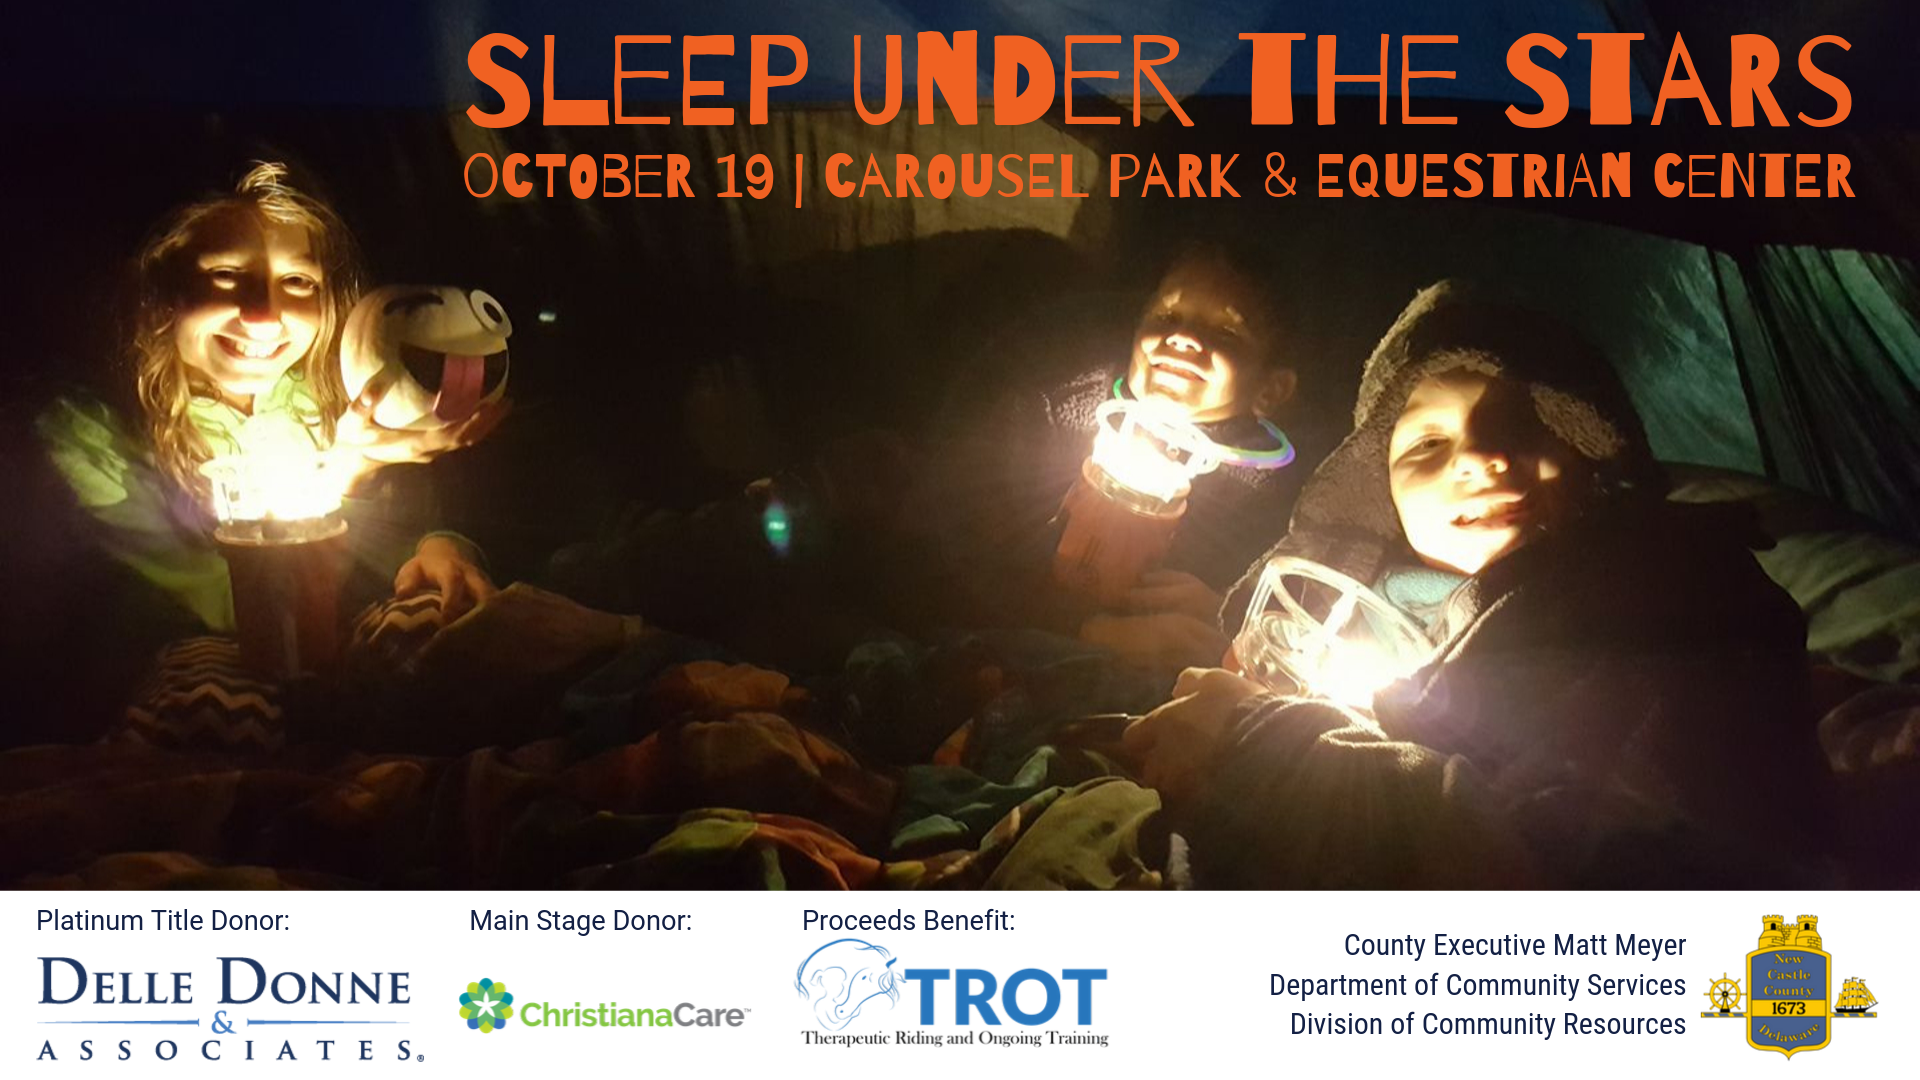 Sleep Under the Stars at Carousel Park October 19